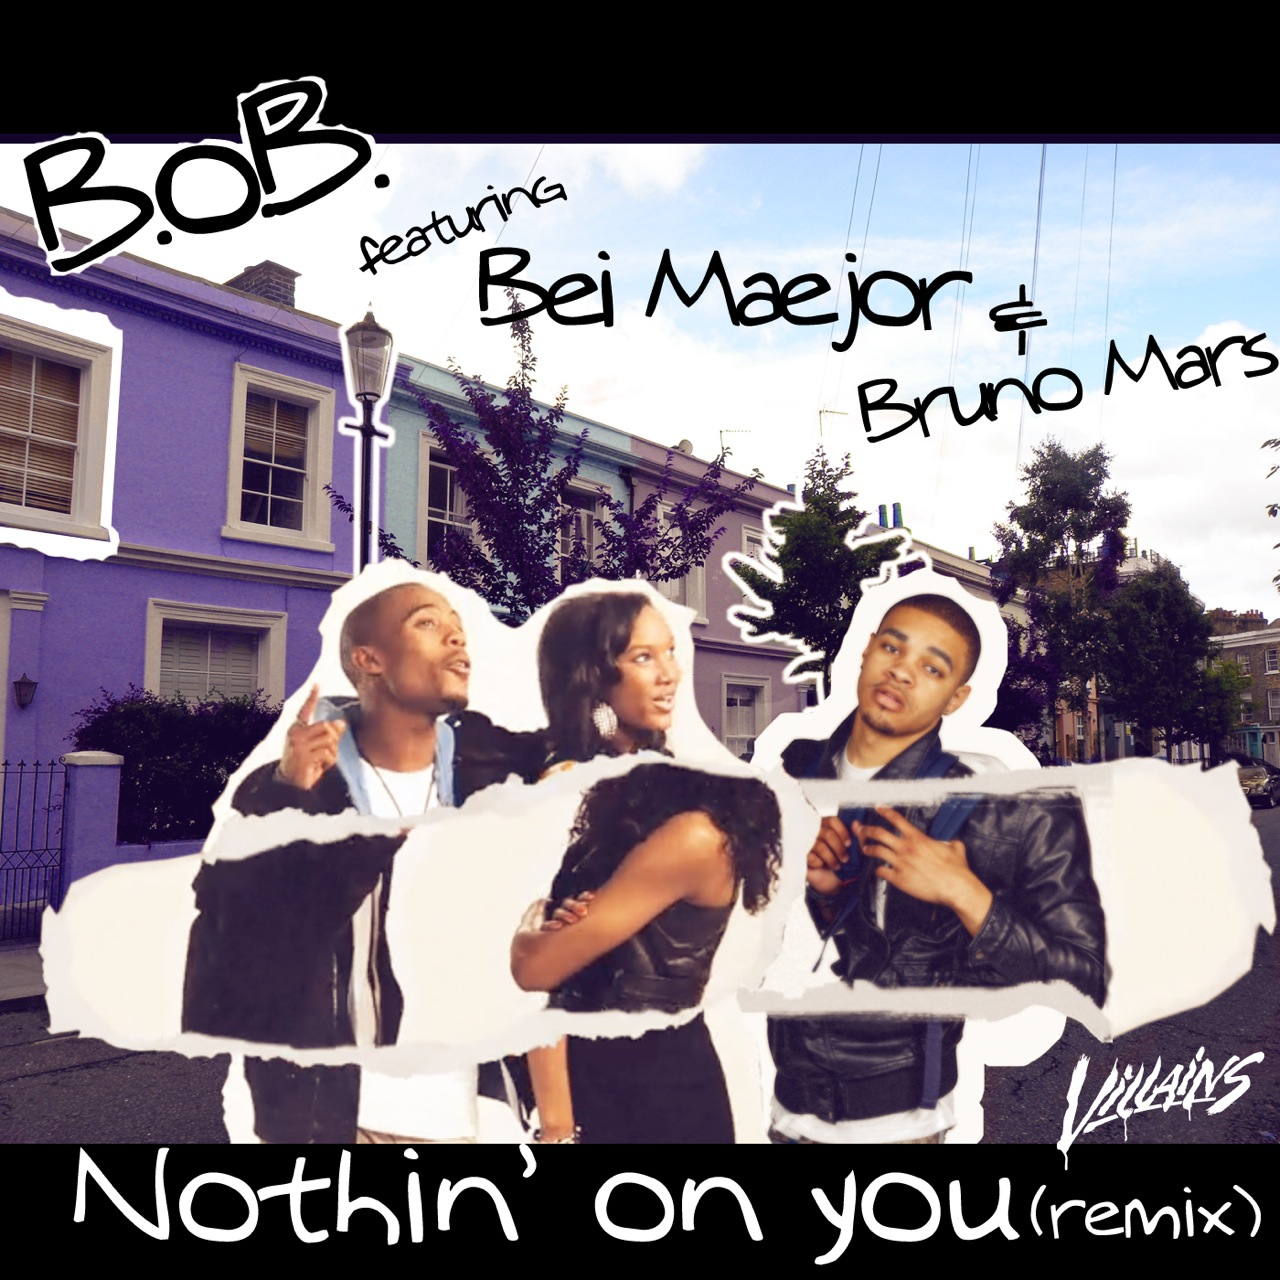 Download Lagu Mars On Your Mind: Download Lagu Bob Feat Bruno Mars Nothing On You Mp3 : Enceco